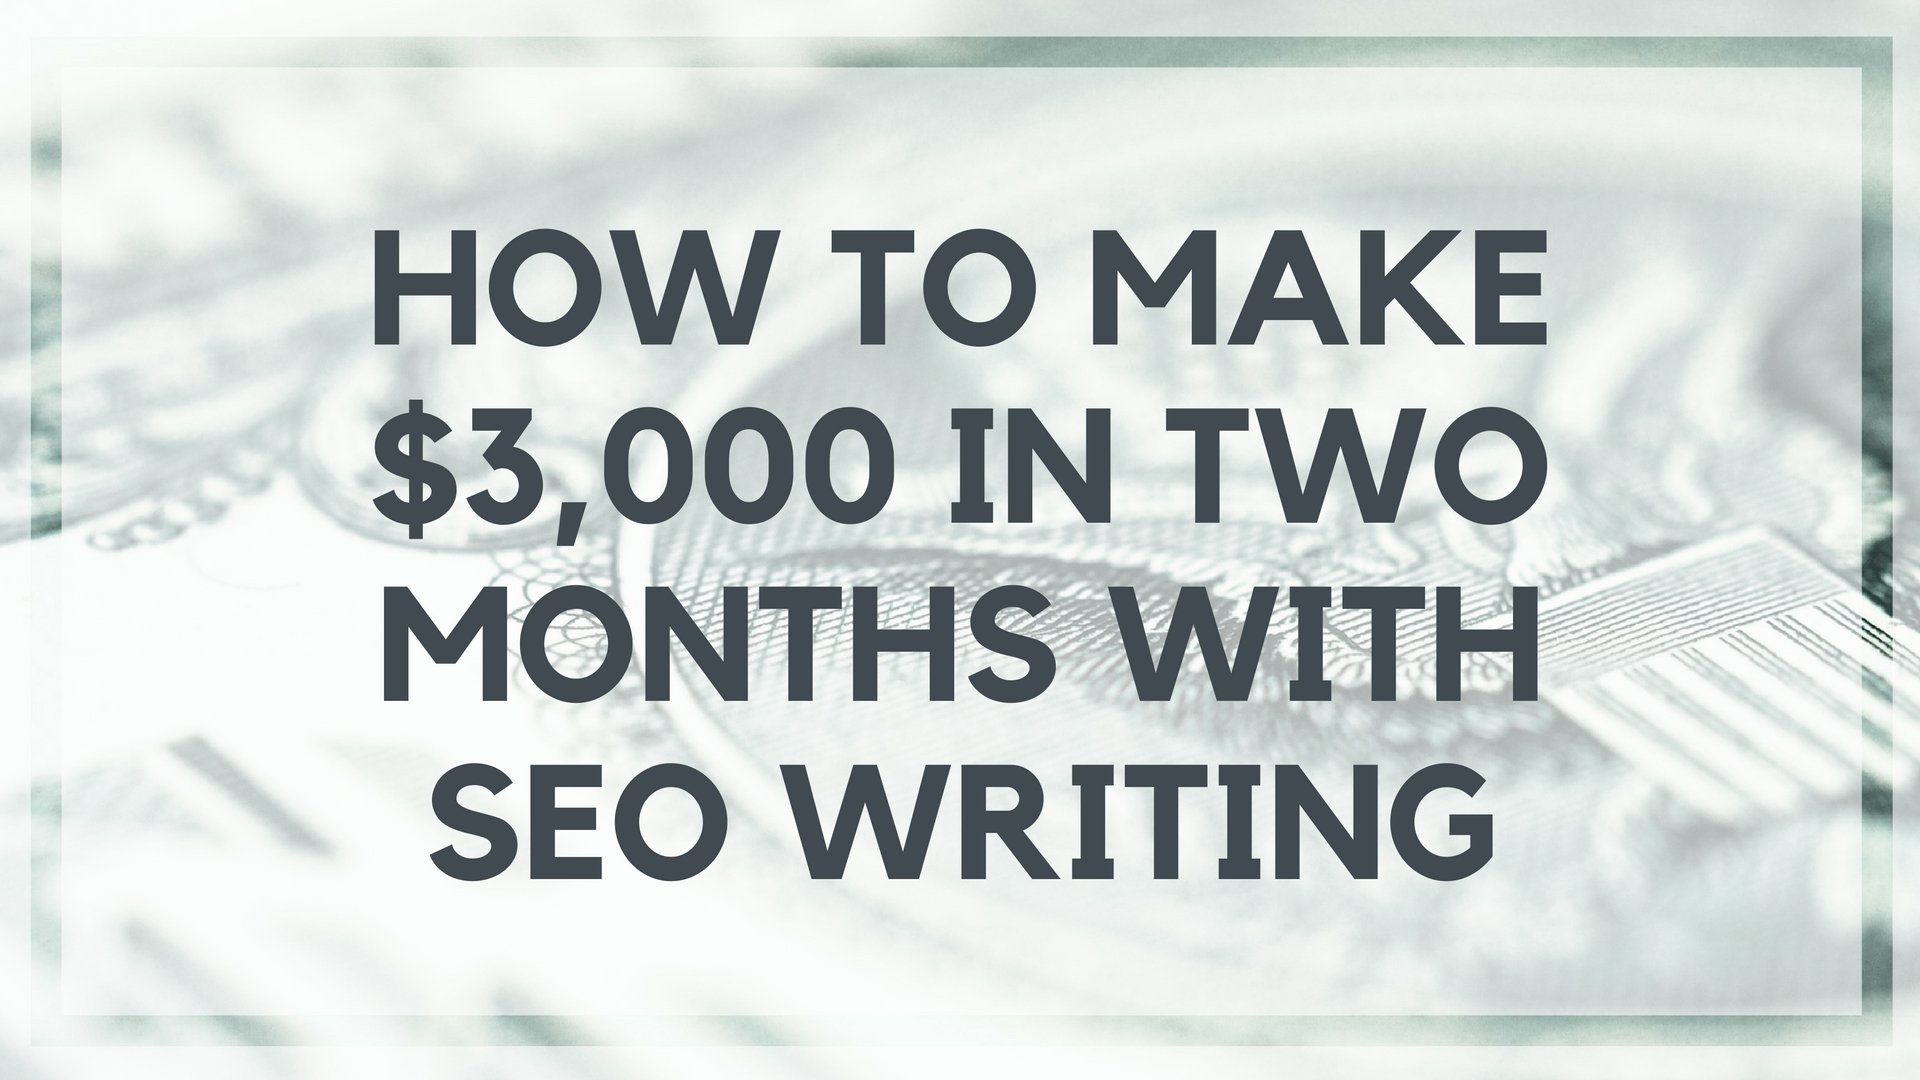 How to Make $3,000 in Two Months with SEO Writing